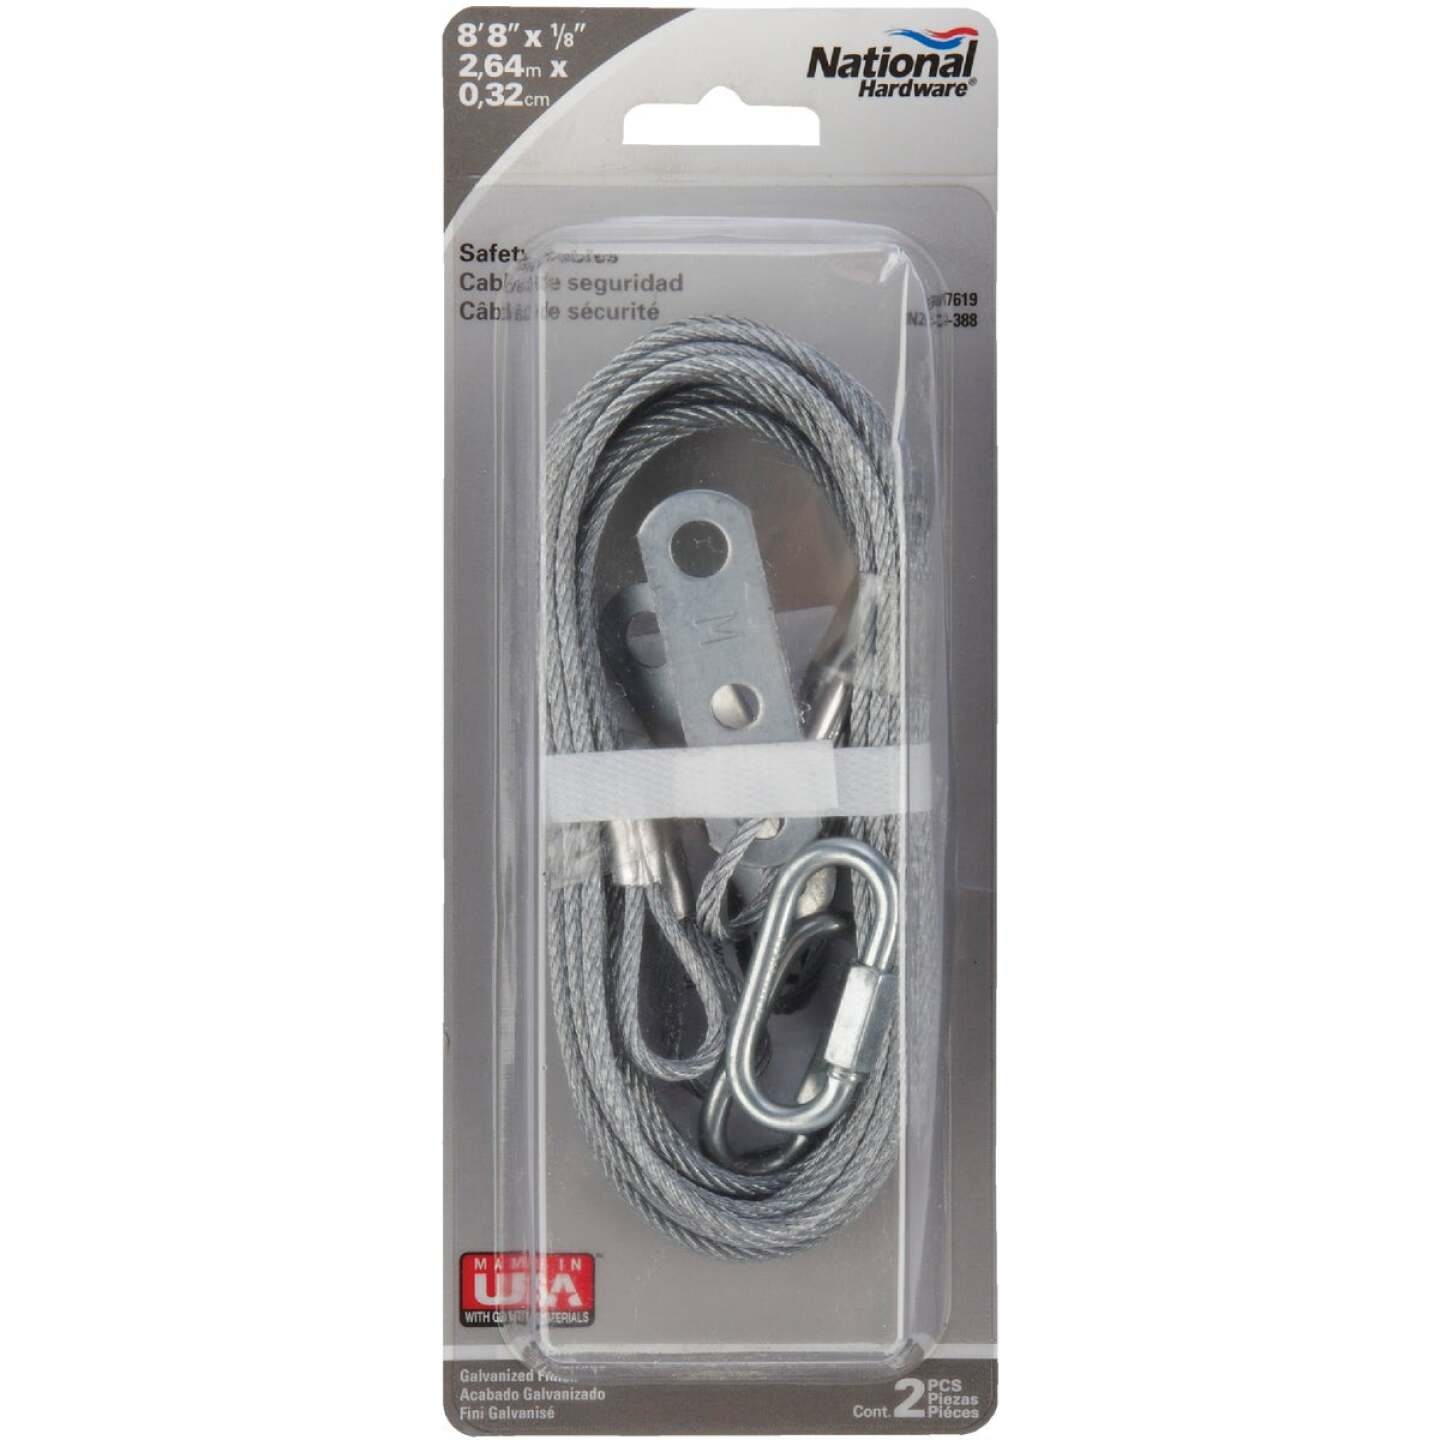 National 8 Ft. 8 In. L. x 1/8 In. Dia. Garage Door Safety Cable Image 2